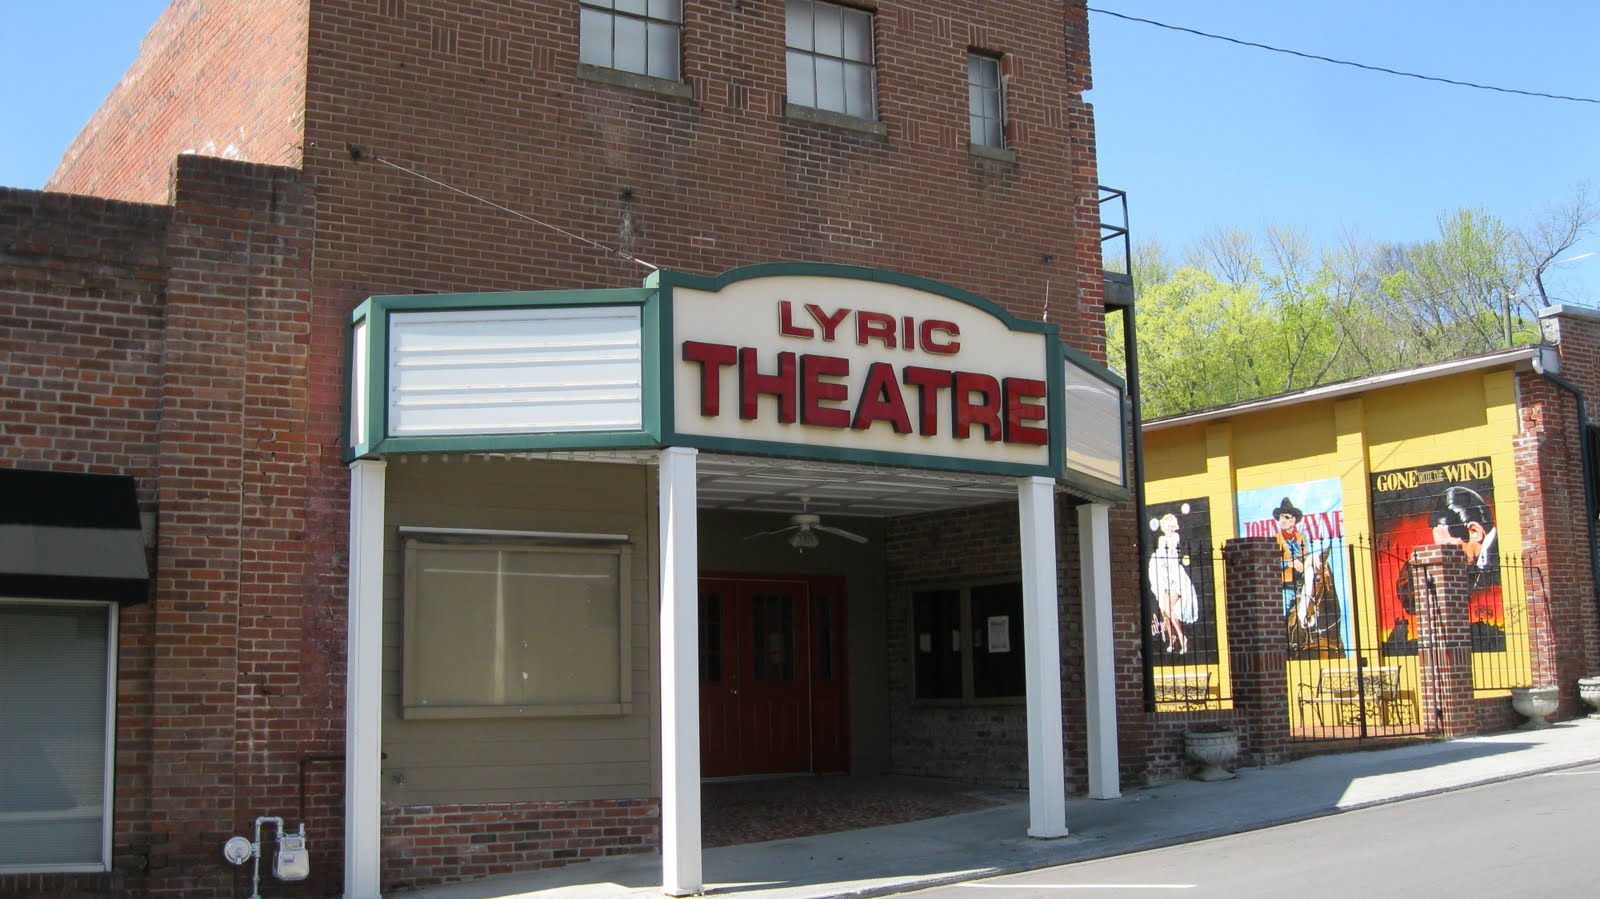 big daddy dave exploring loudon tennessee this is the 3rd iteration of the lyric theatre the first one was built in 1912 and it burned down in 1934 its replacement burned down in 1942 and the